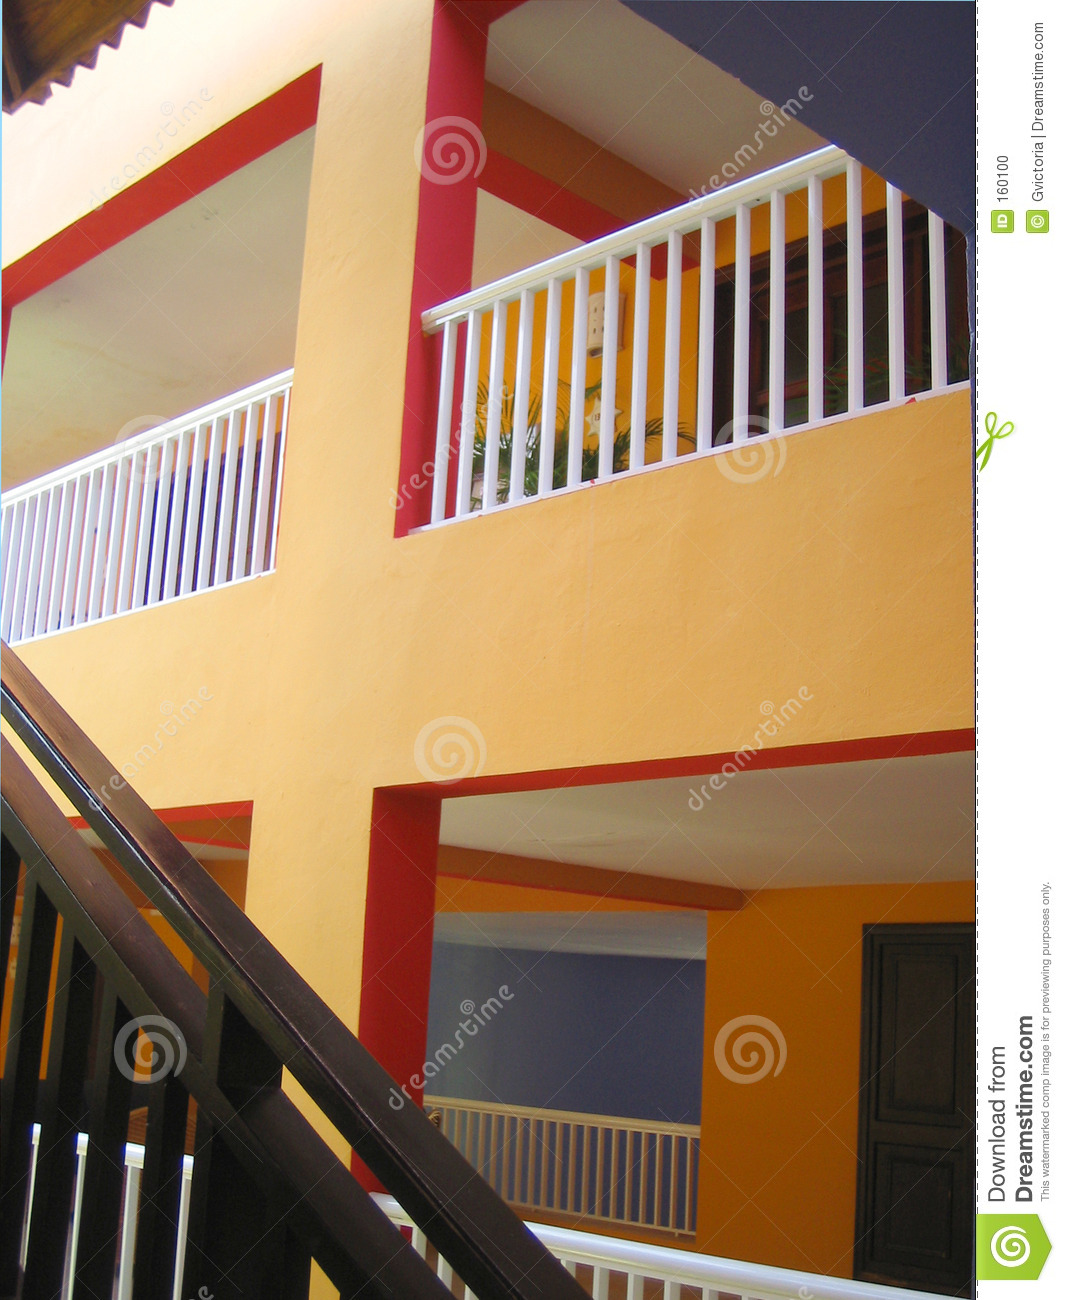 Stairs and balconies